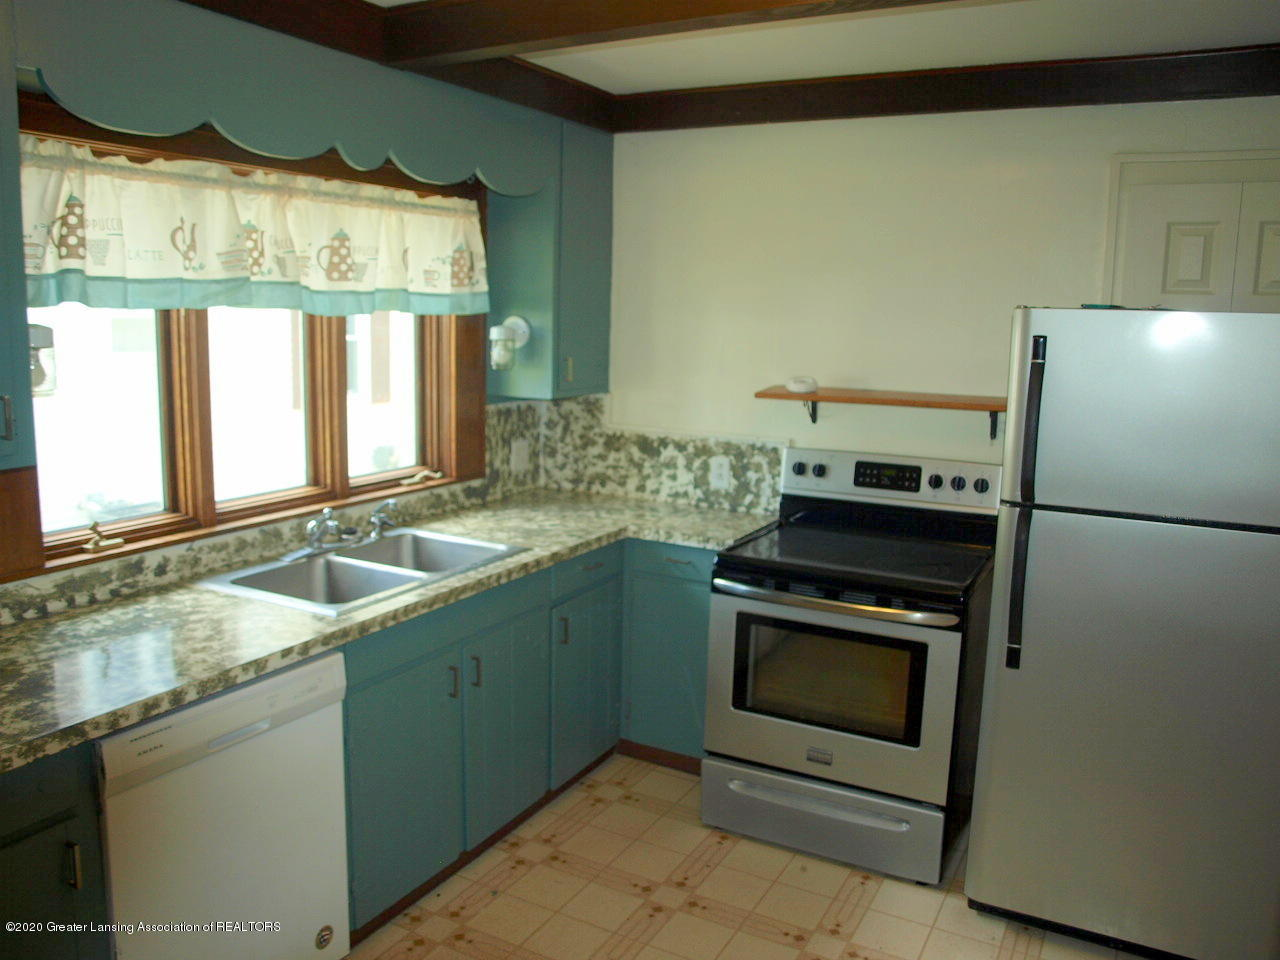 601 S Oakland St - kitchen - 13